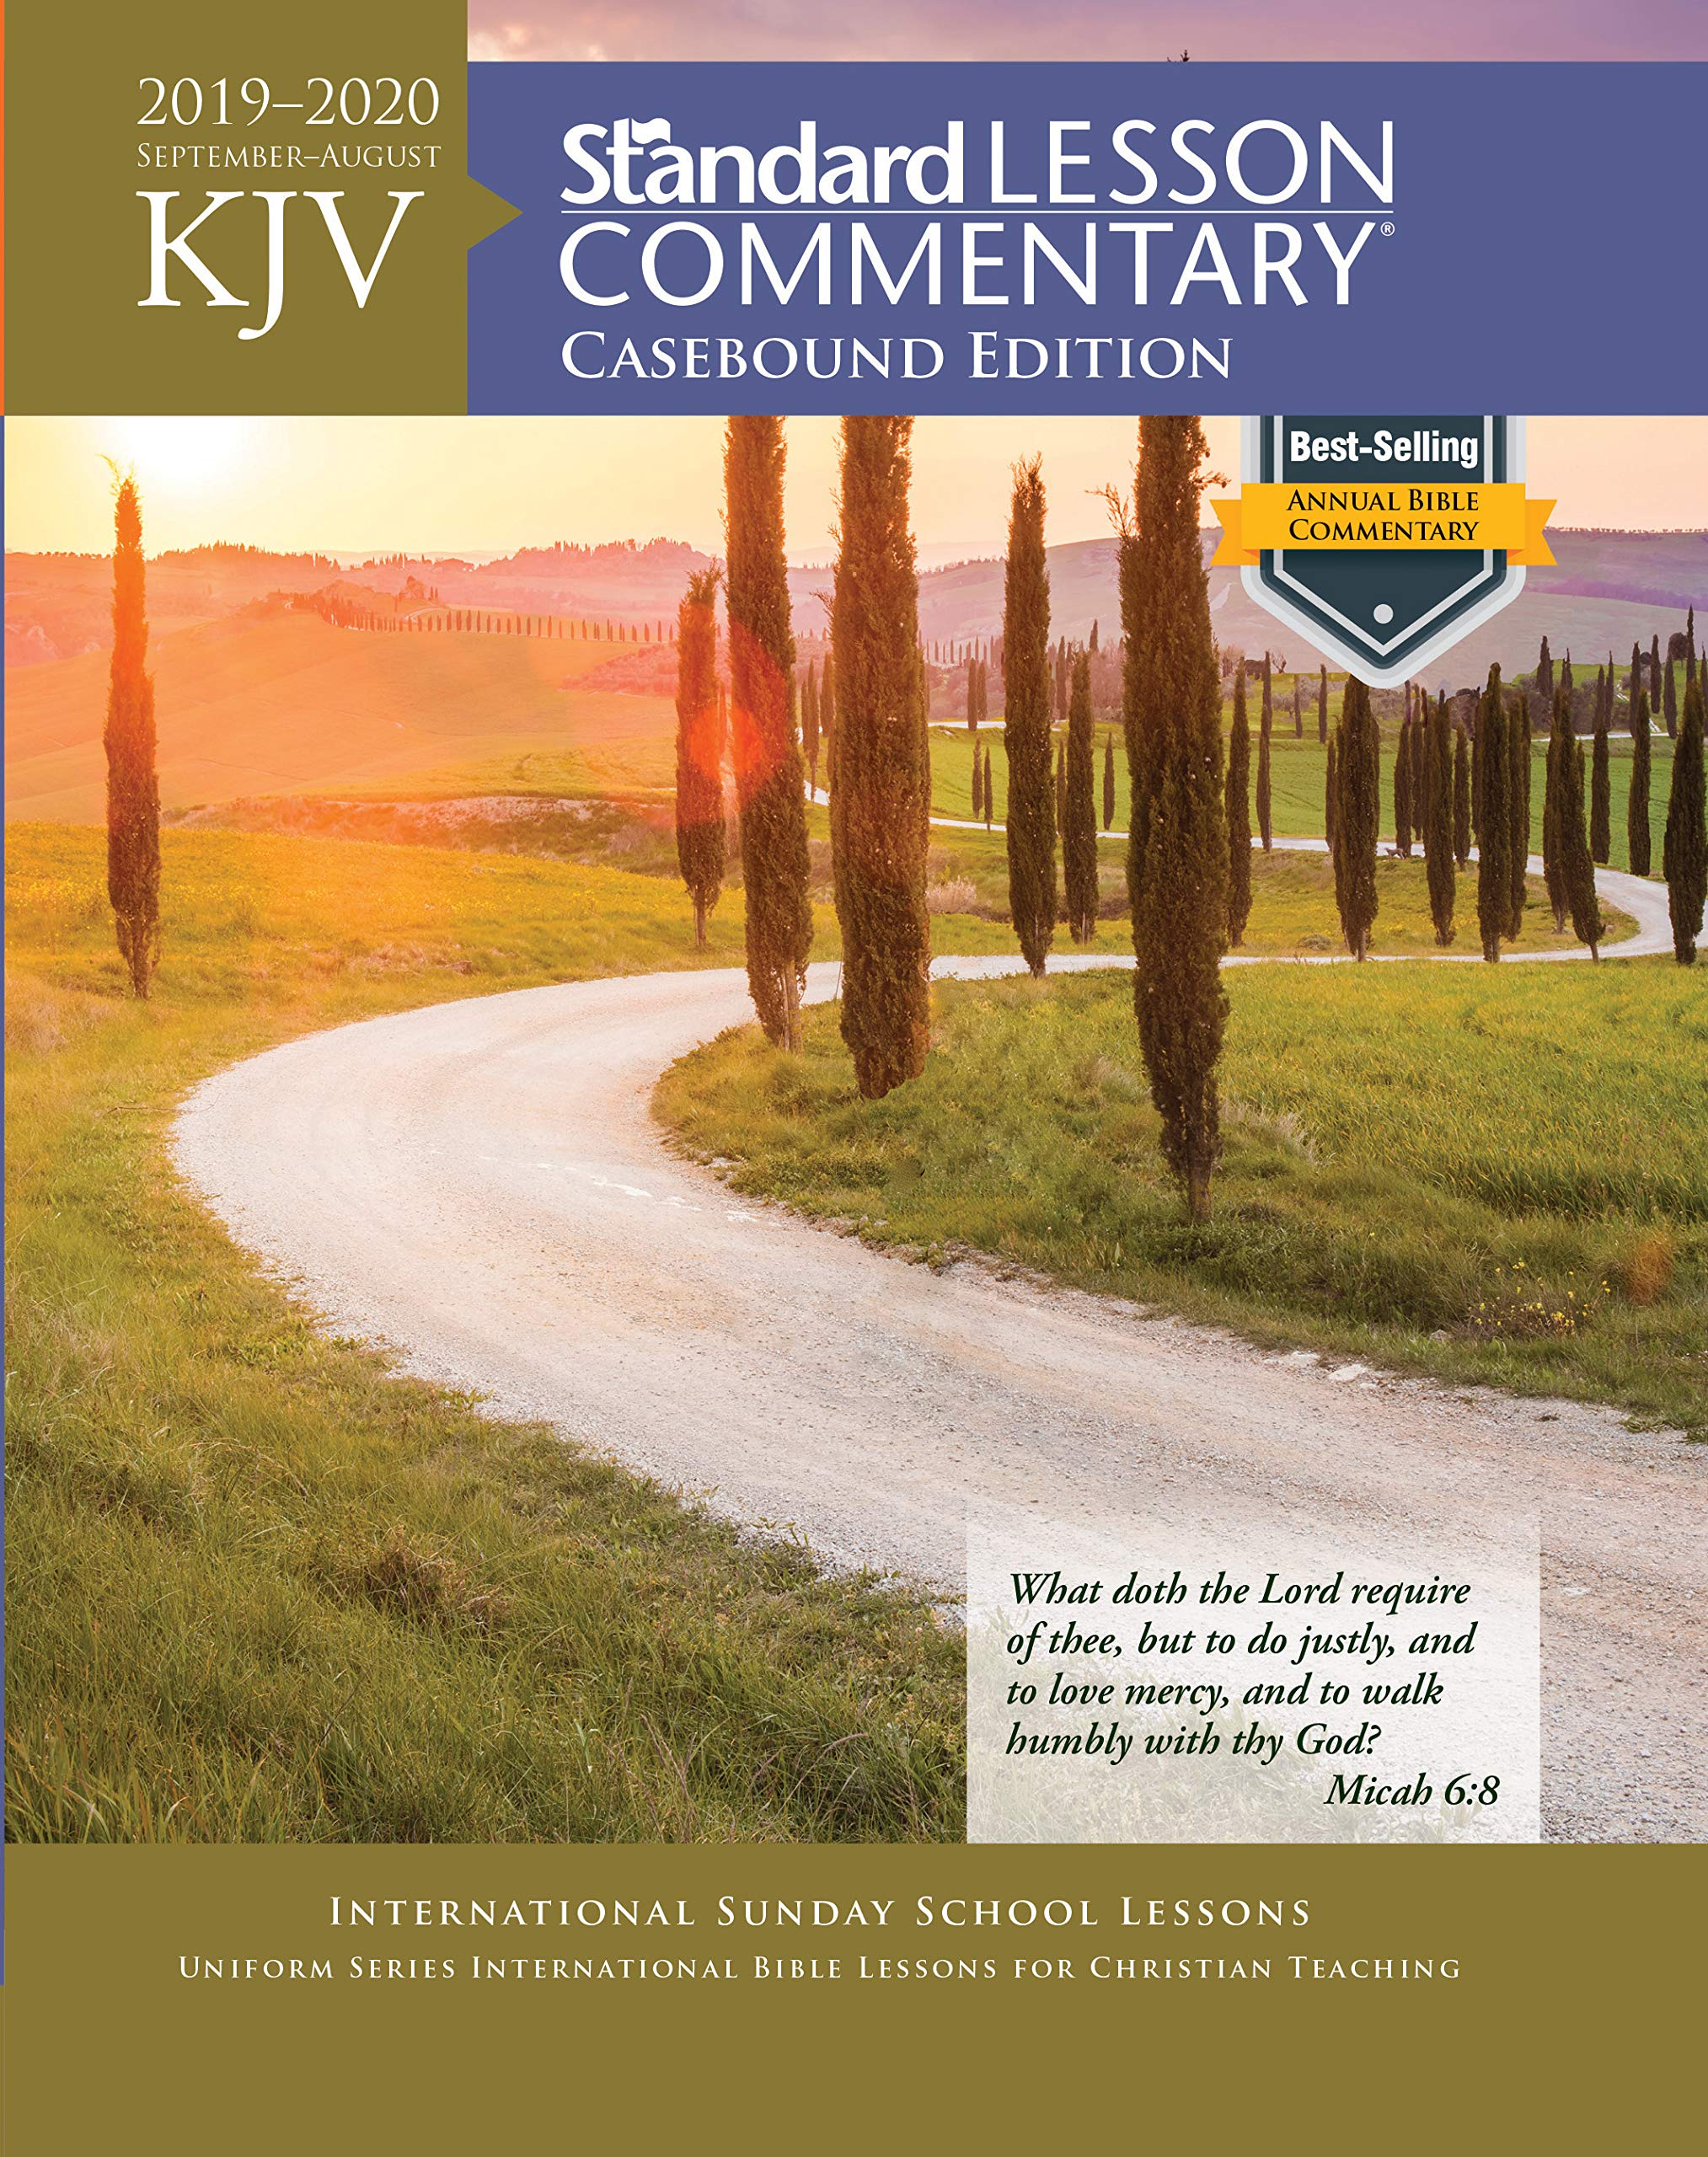 KJV Standard Lesson Commentary® Casebound Edition 2019-2020 by David C Cook